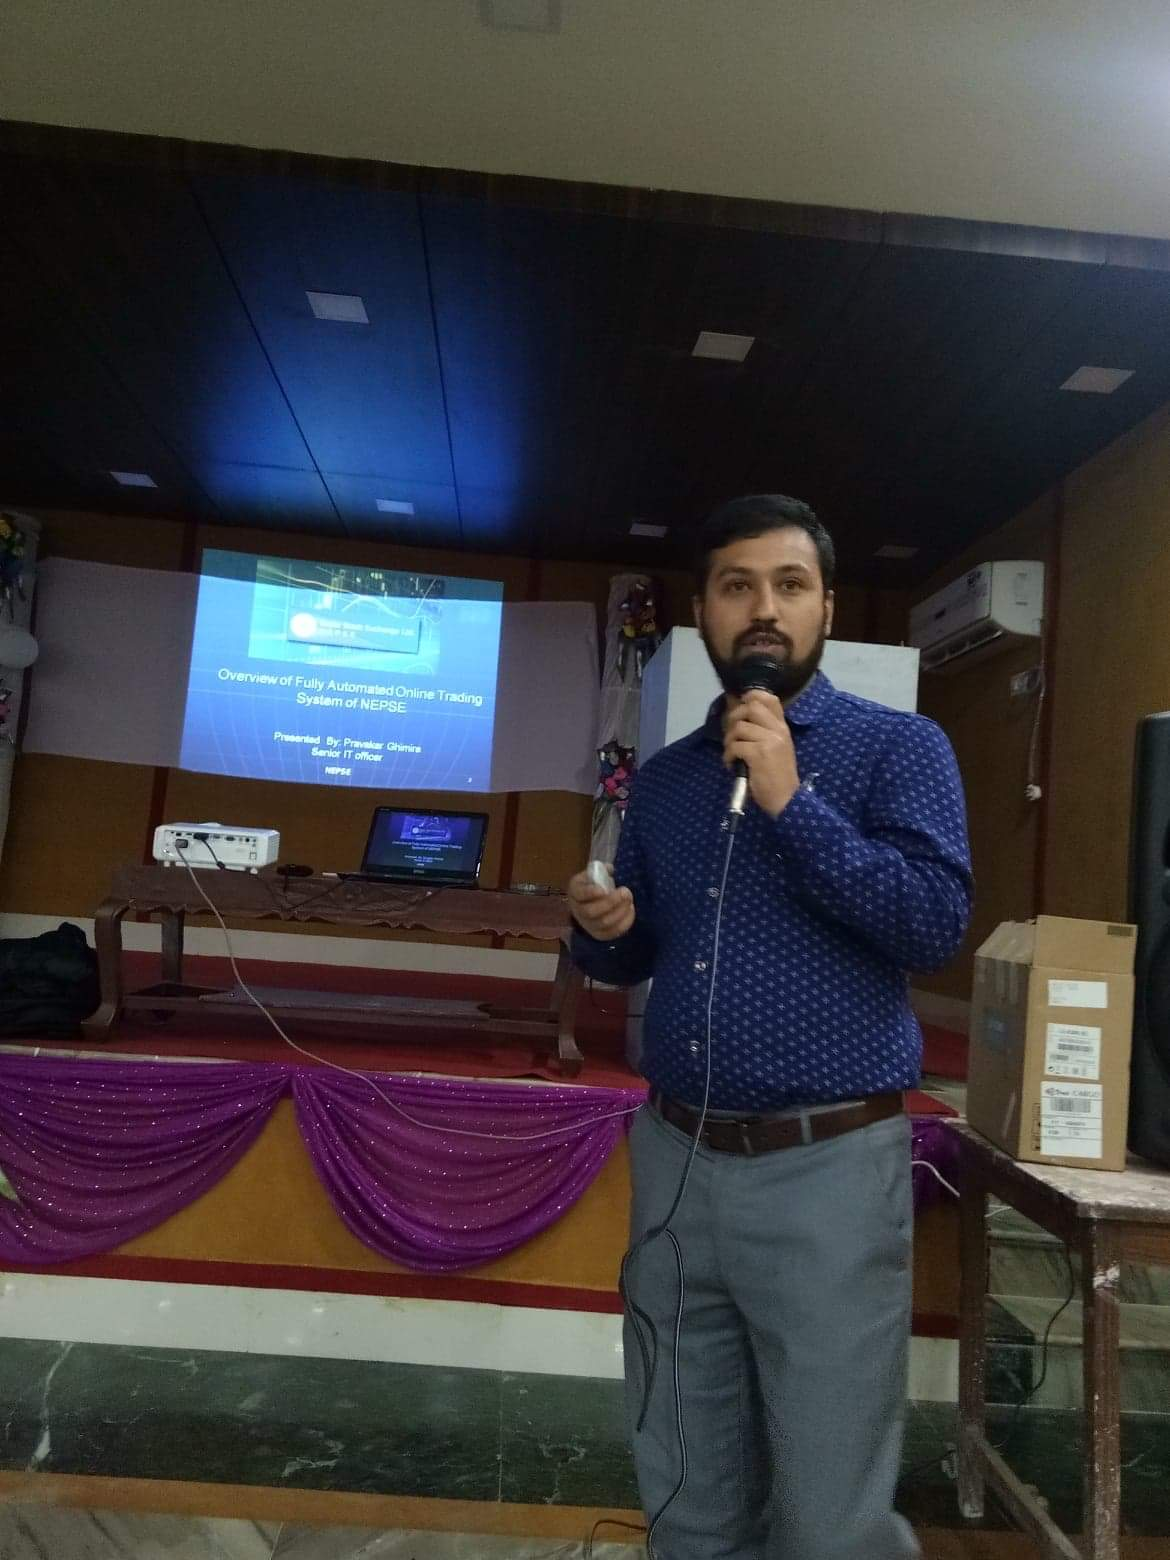 Mr. Pravakar Gimire presentation on